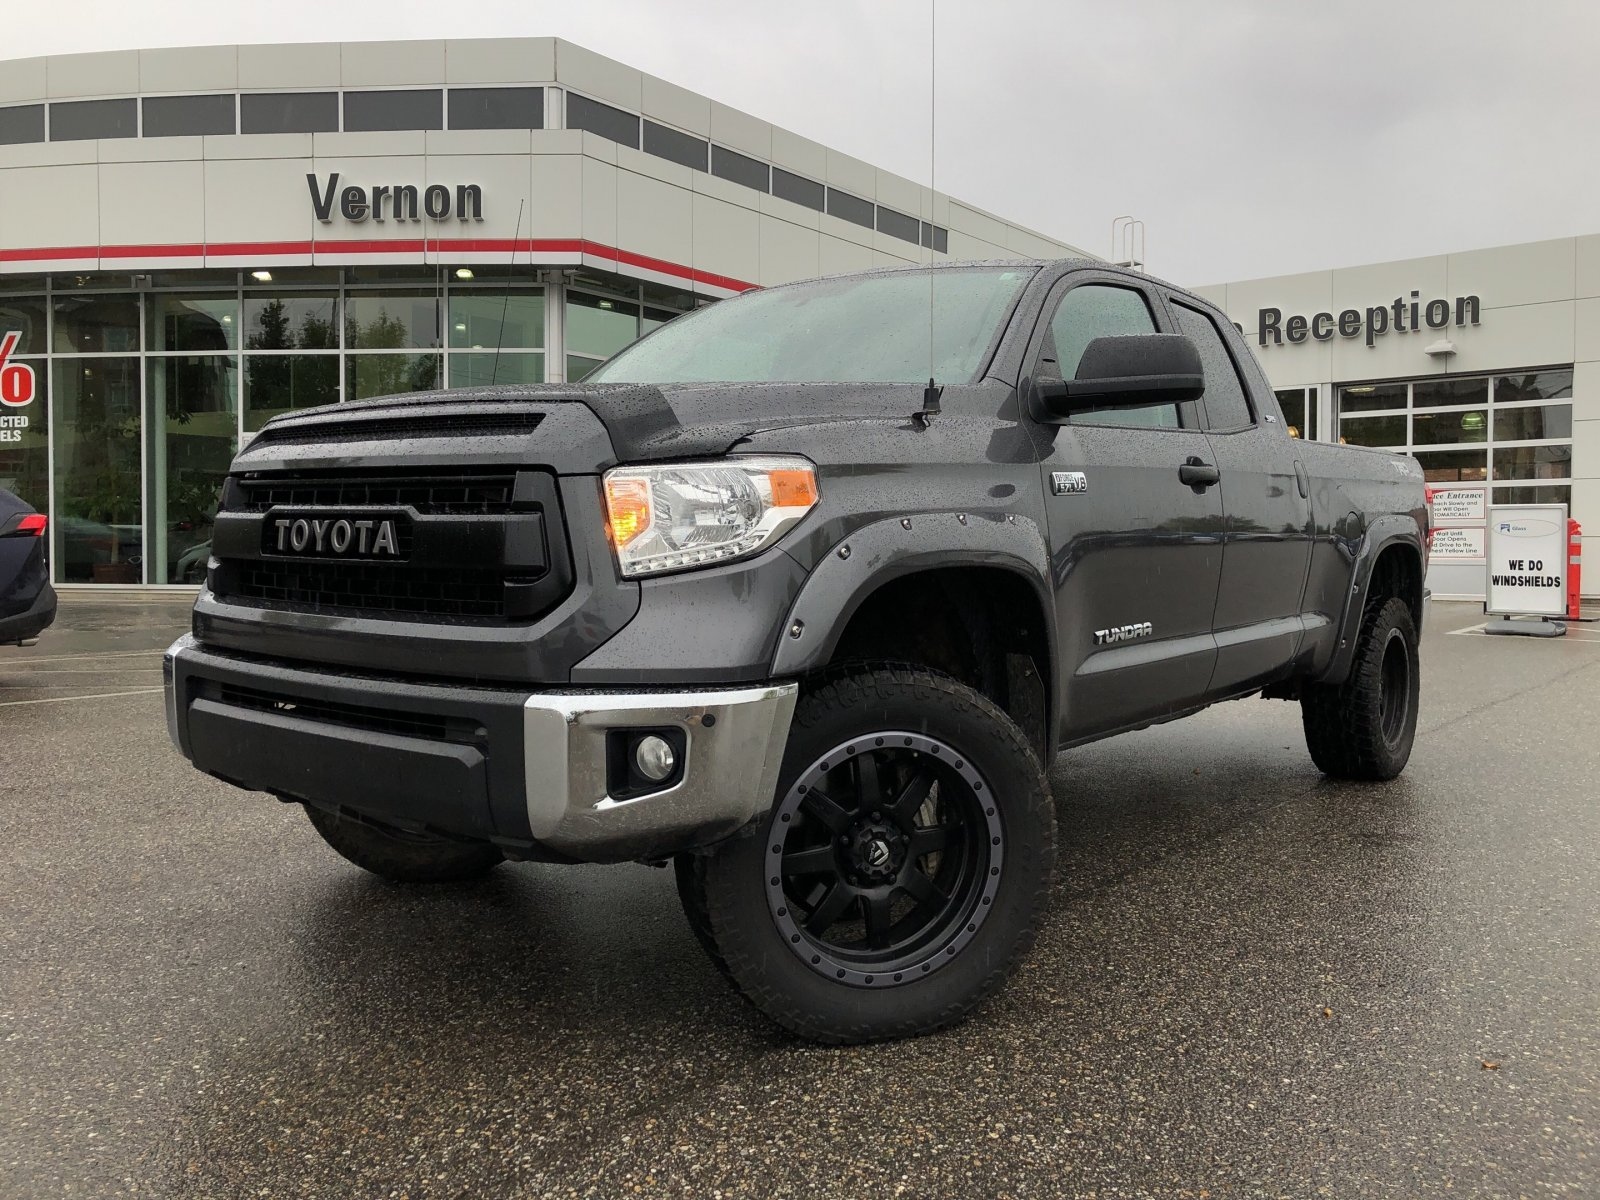 2016 Toyota Tundra 4x4 DOUBLE CAB TRD OFF ROAD LIFTED (V2061A) Main Image